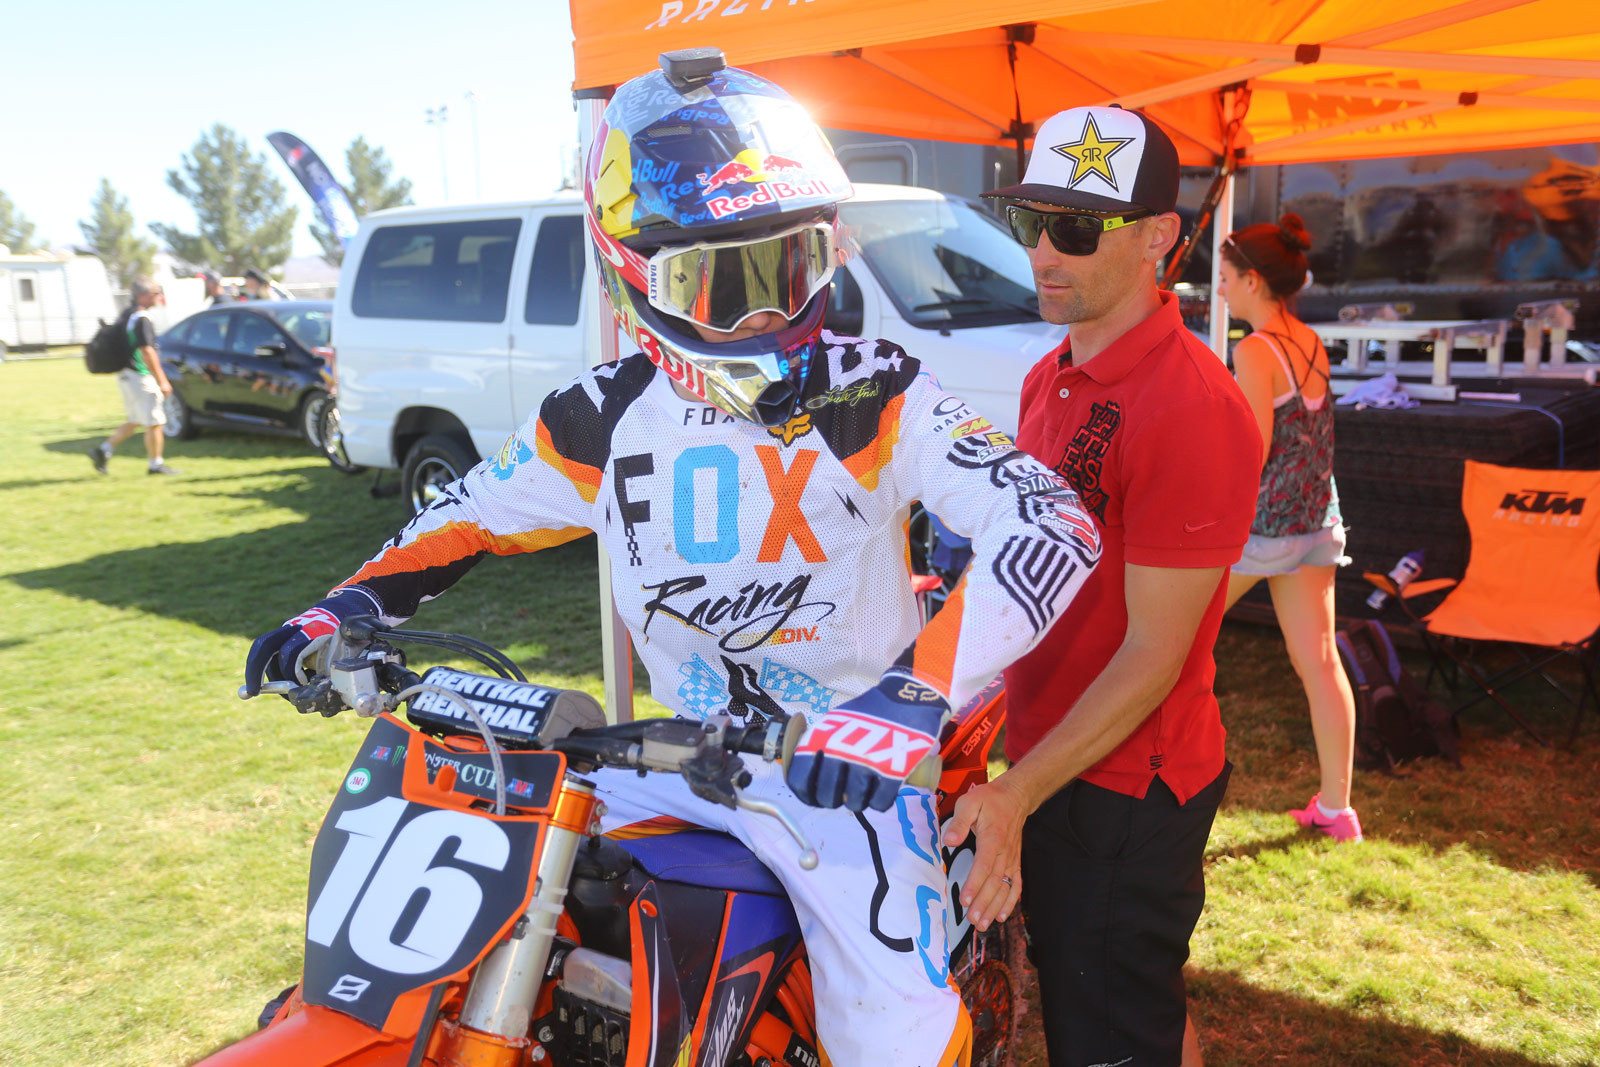 Enzo Lopes and Brett Metcalfe - Vital MX Pit Bits: 2016 Monster Energy Cup - Motocross Pictures - Vital MX